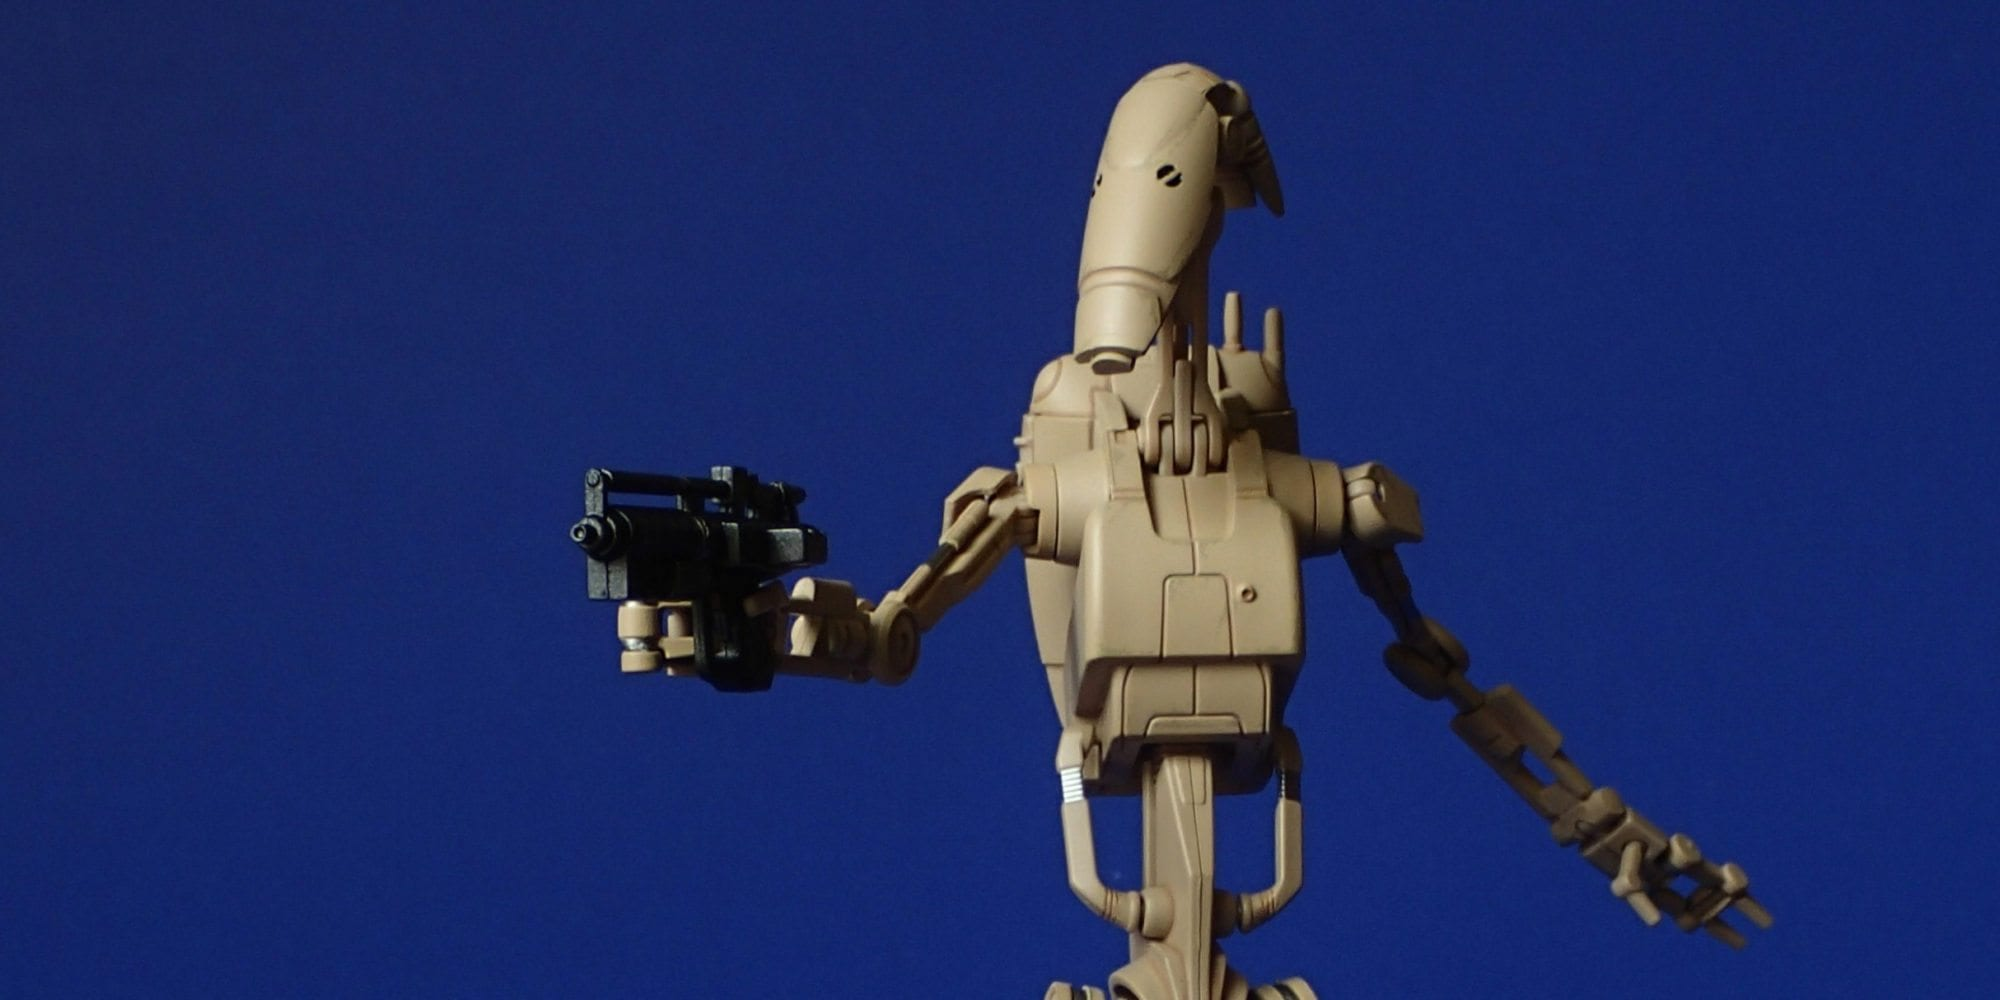 Photographic Plastic: SH Figuarts Battle Droid